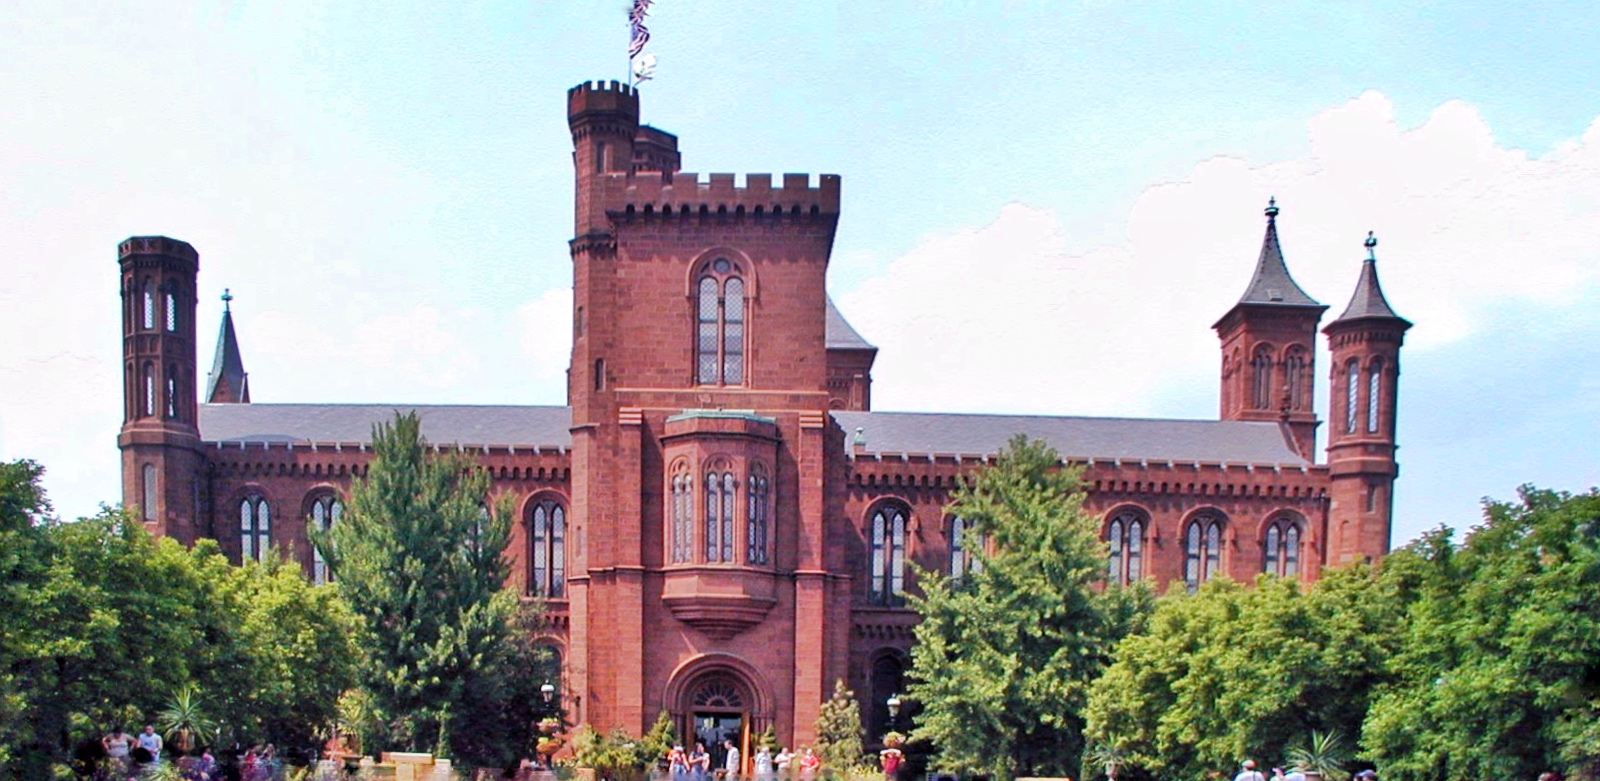 Guide to the Smithsonian: The Smithsonian Institution , AKA castle, has a distinct red facade.